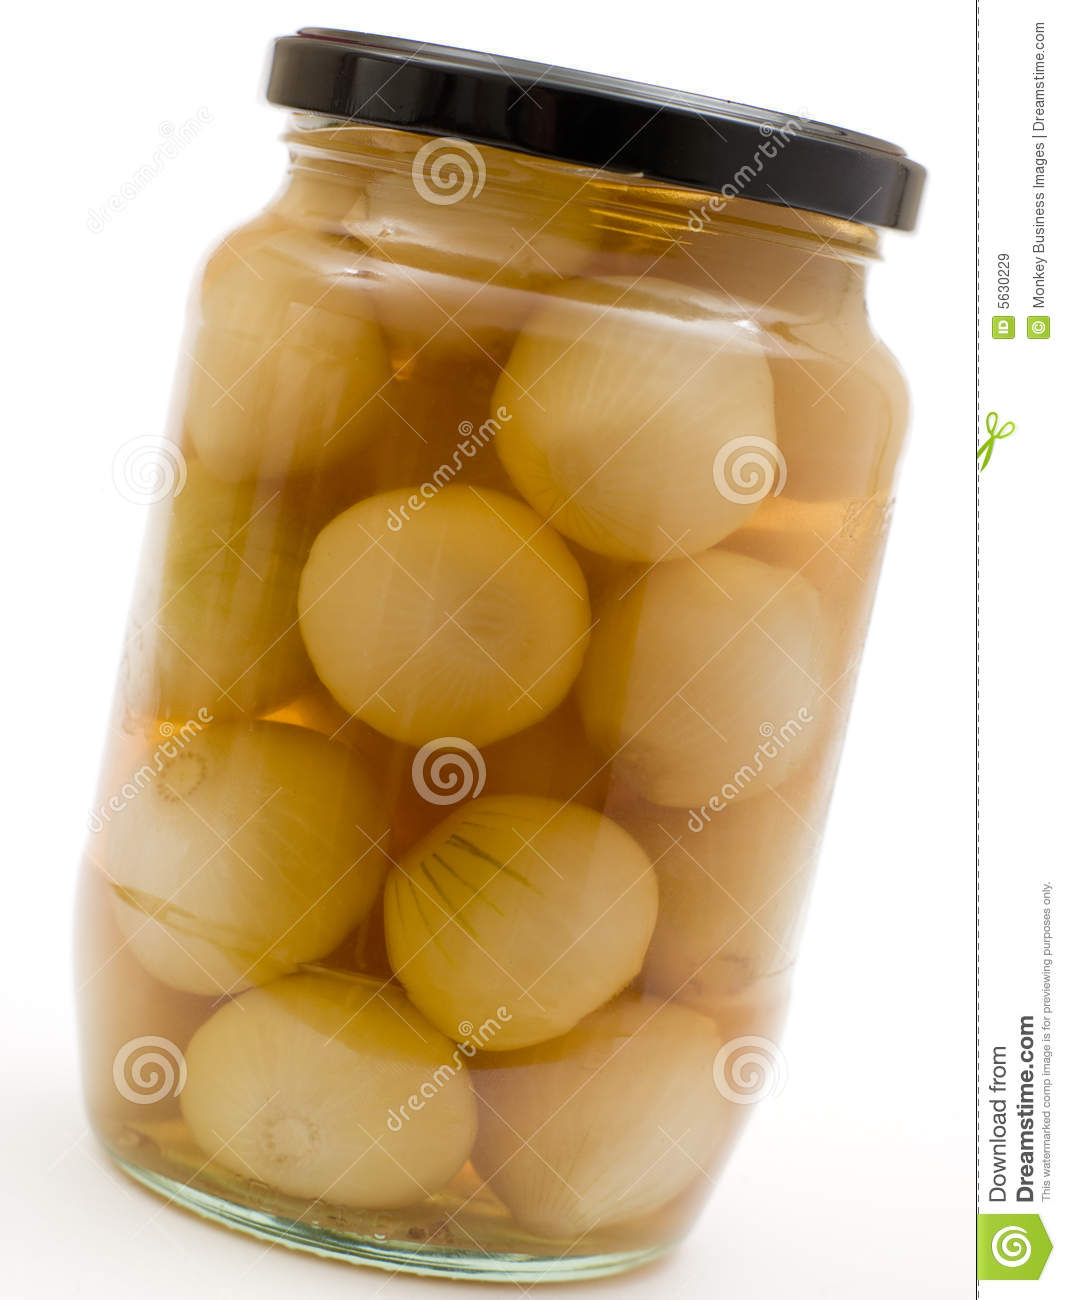 Jar of Pickled Onions stock image  Image of english